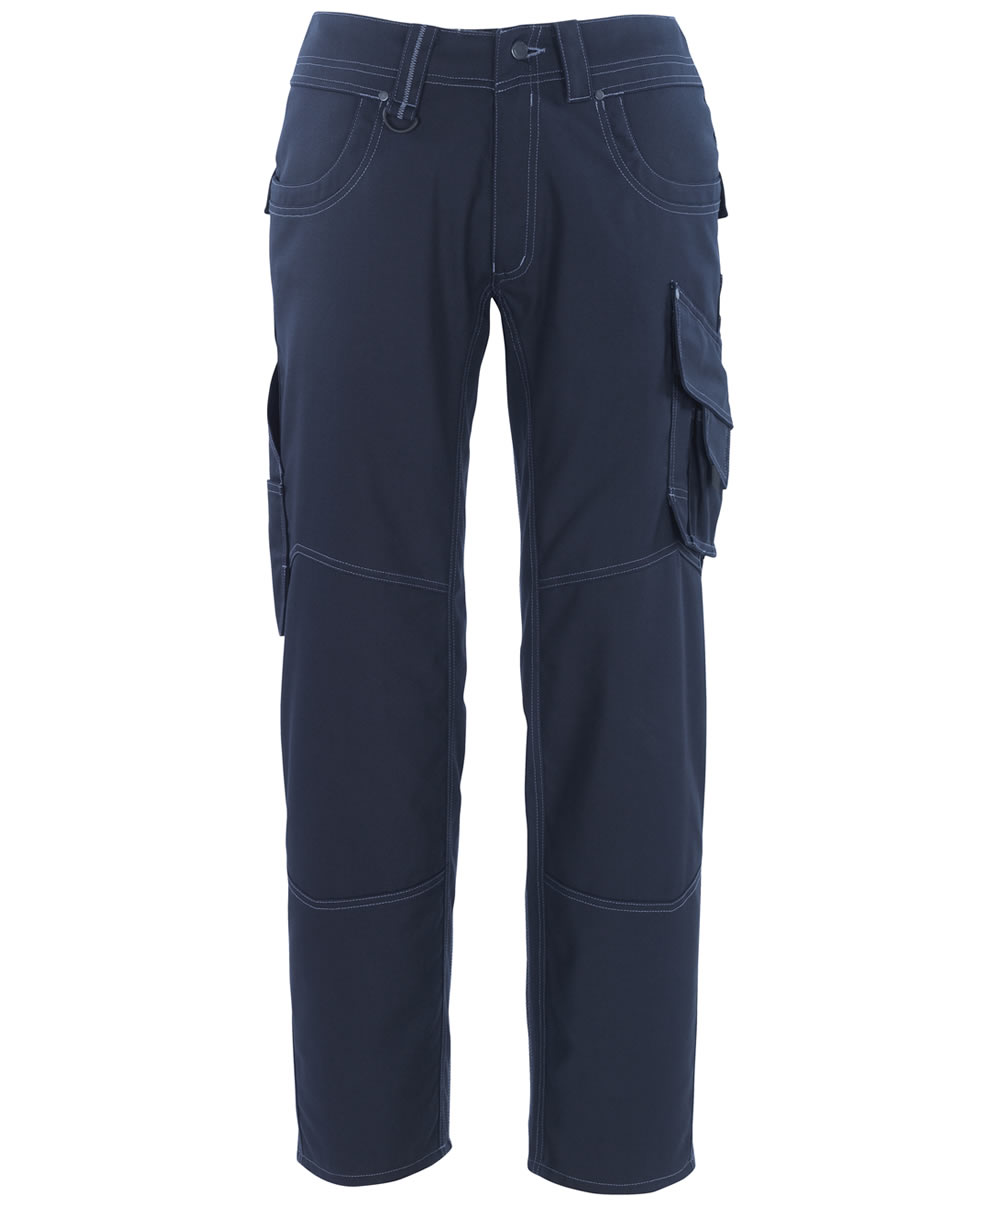 MASCOT ARKANSAS TROUSERS – Discontinued